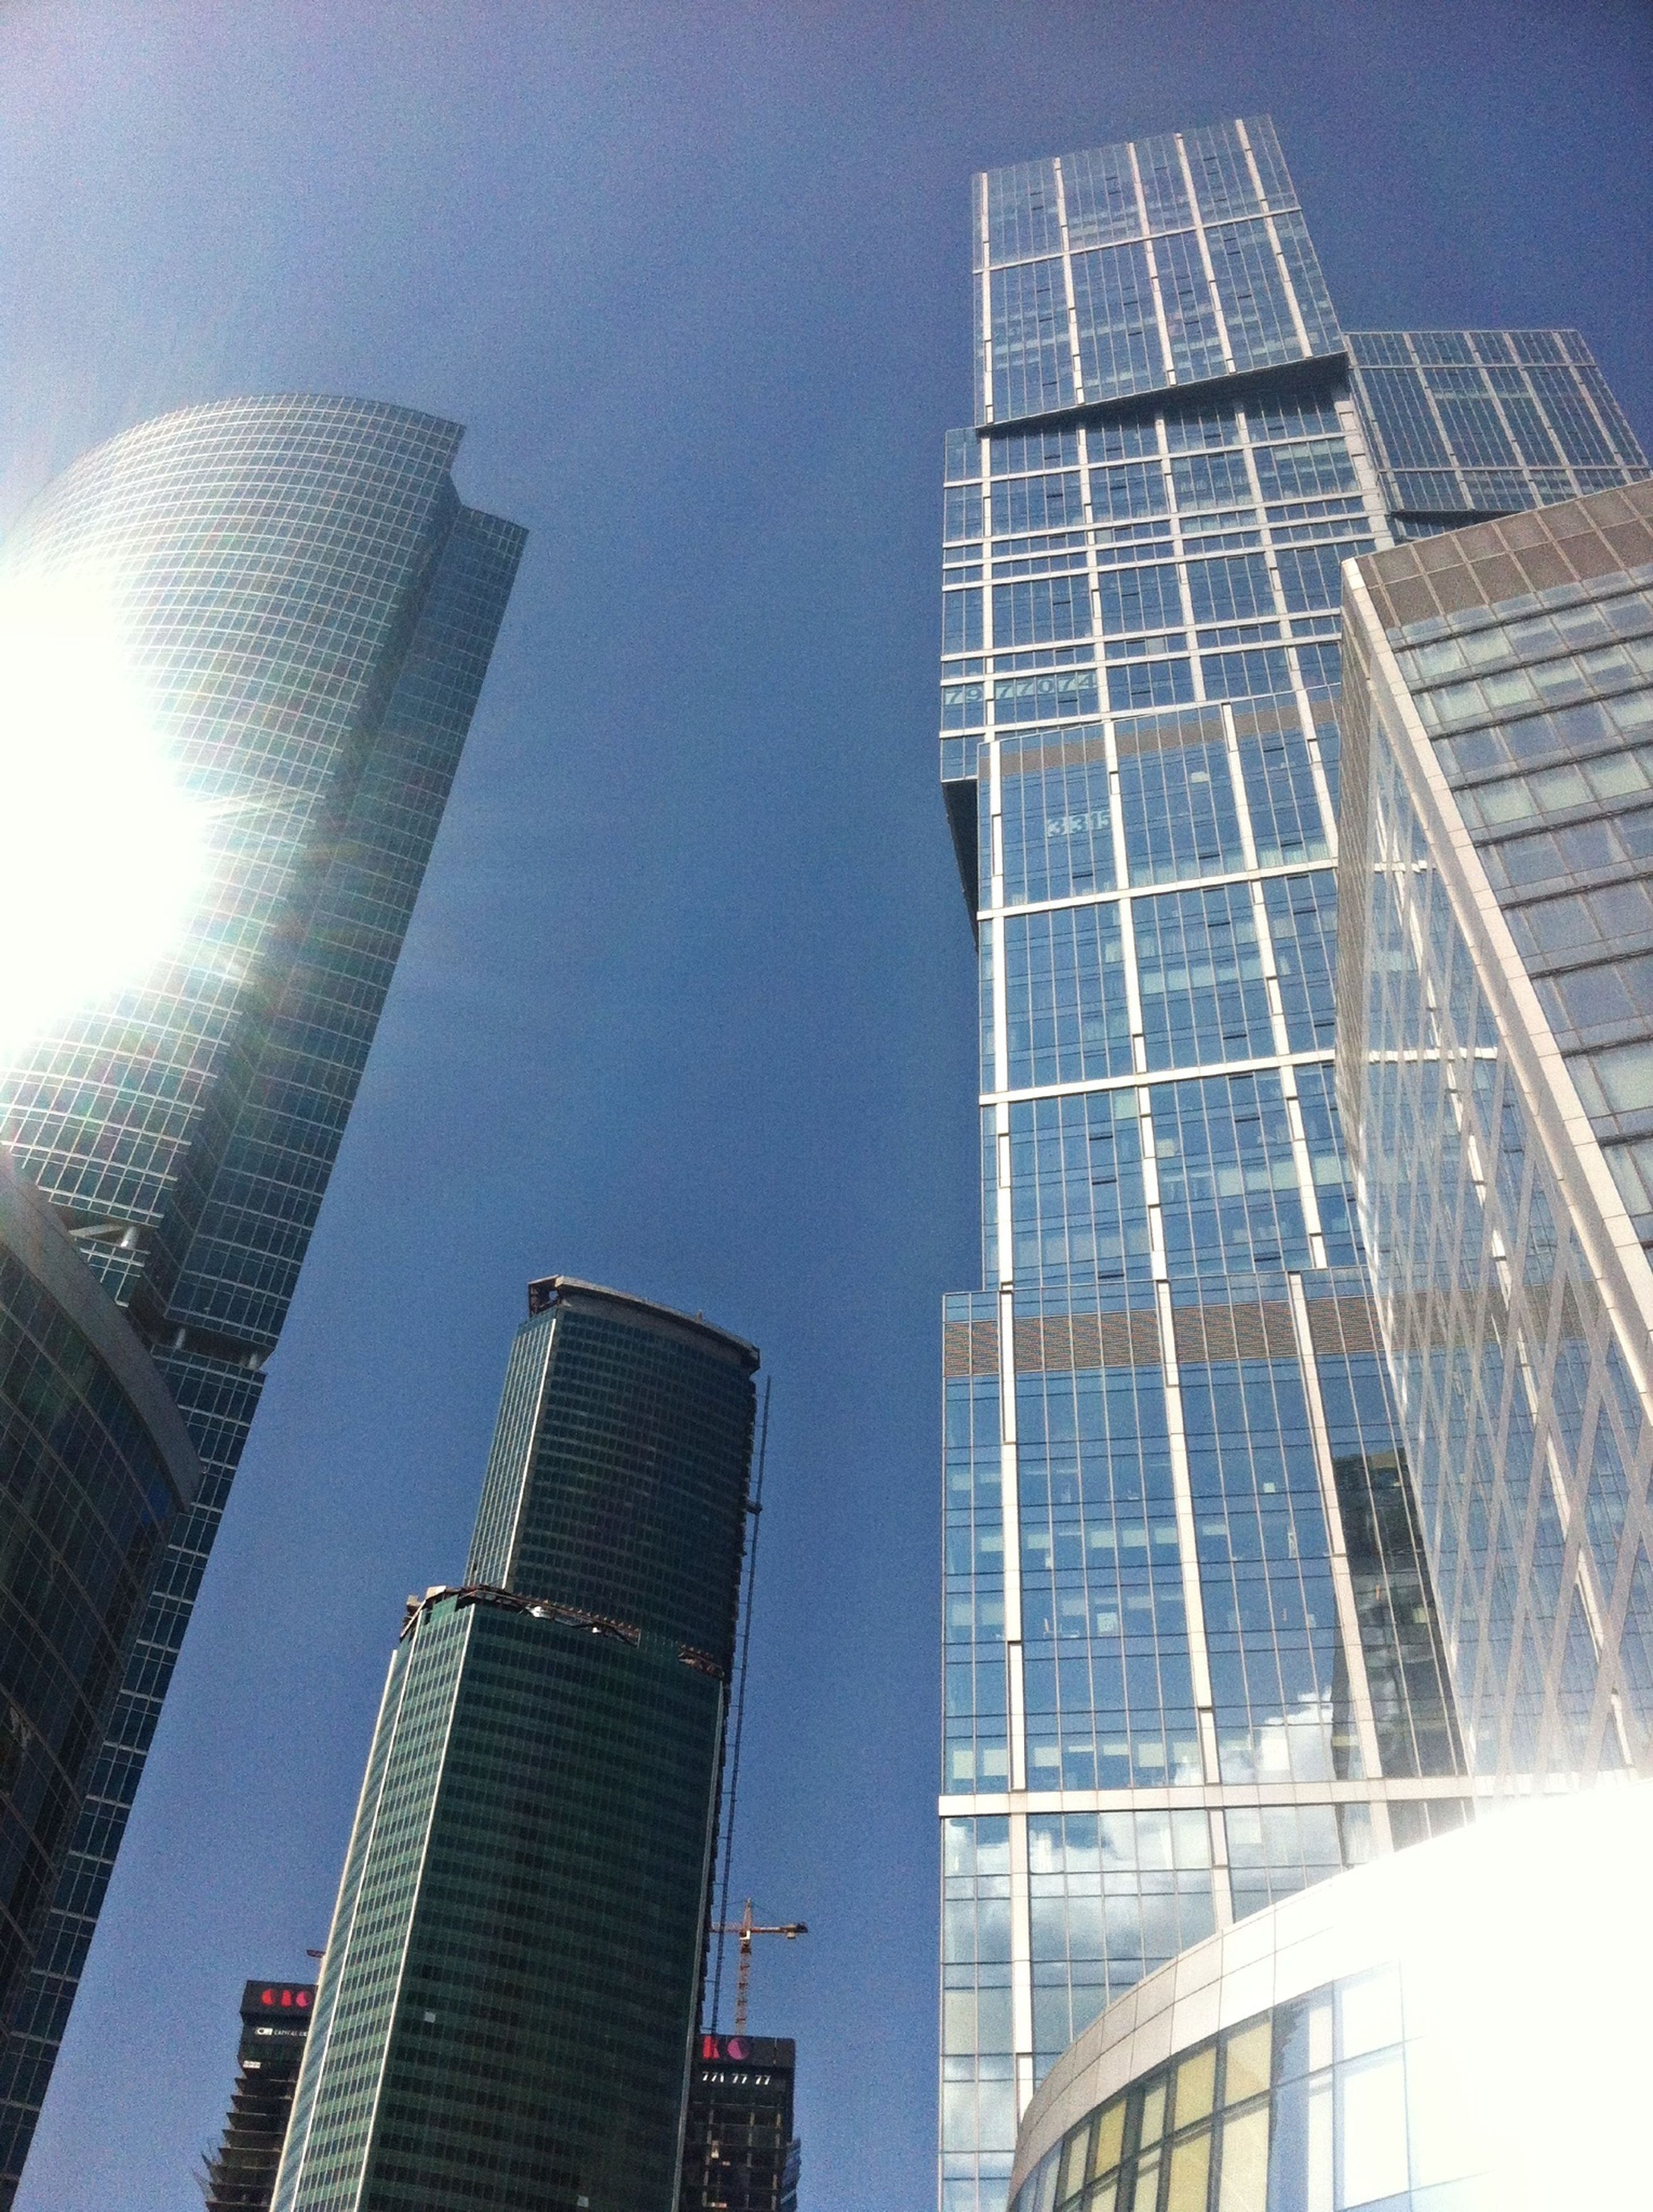 architecture, building exterior, skyscraper, modern, built structure, low angle view, tall - high, office building, city, tower, glass - material, building, financial district, sky, reflection, capital cities, development, clear sky, tall, sunlight